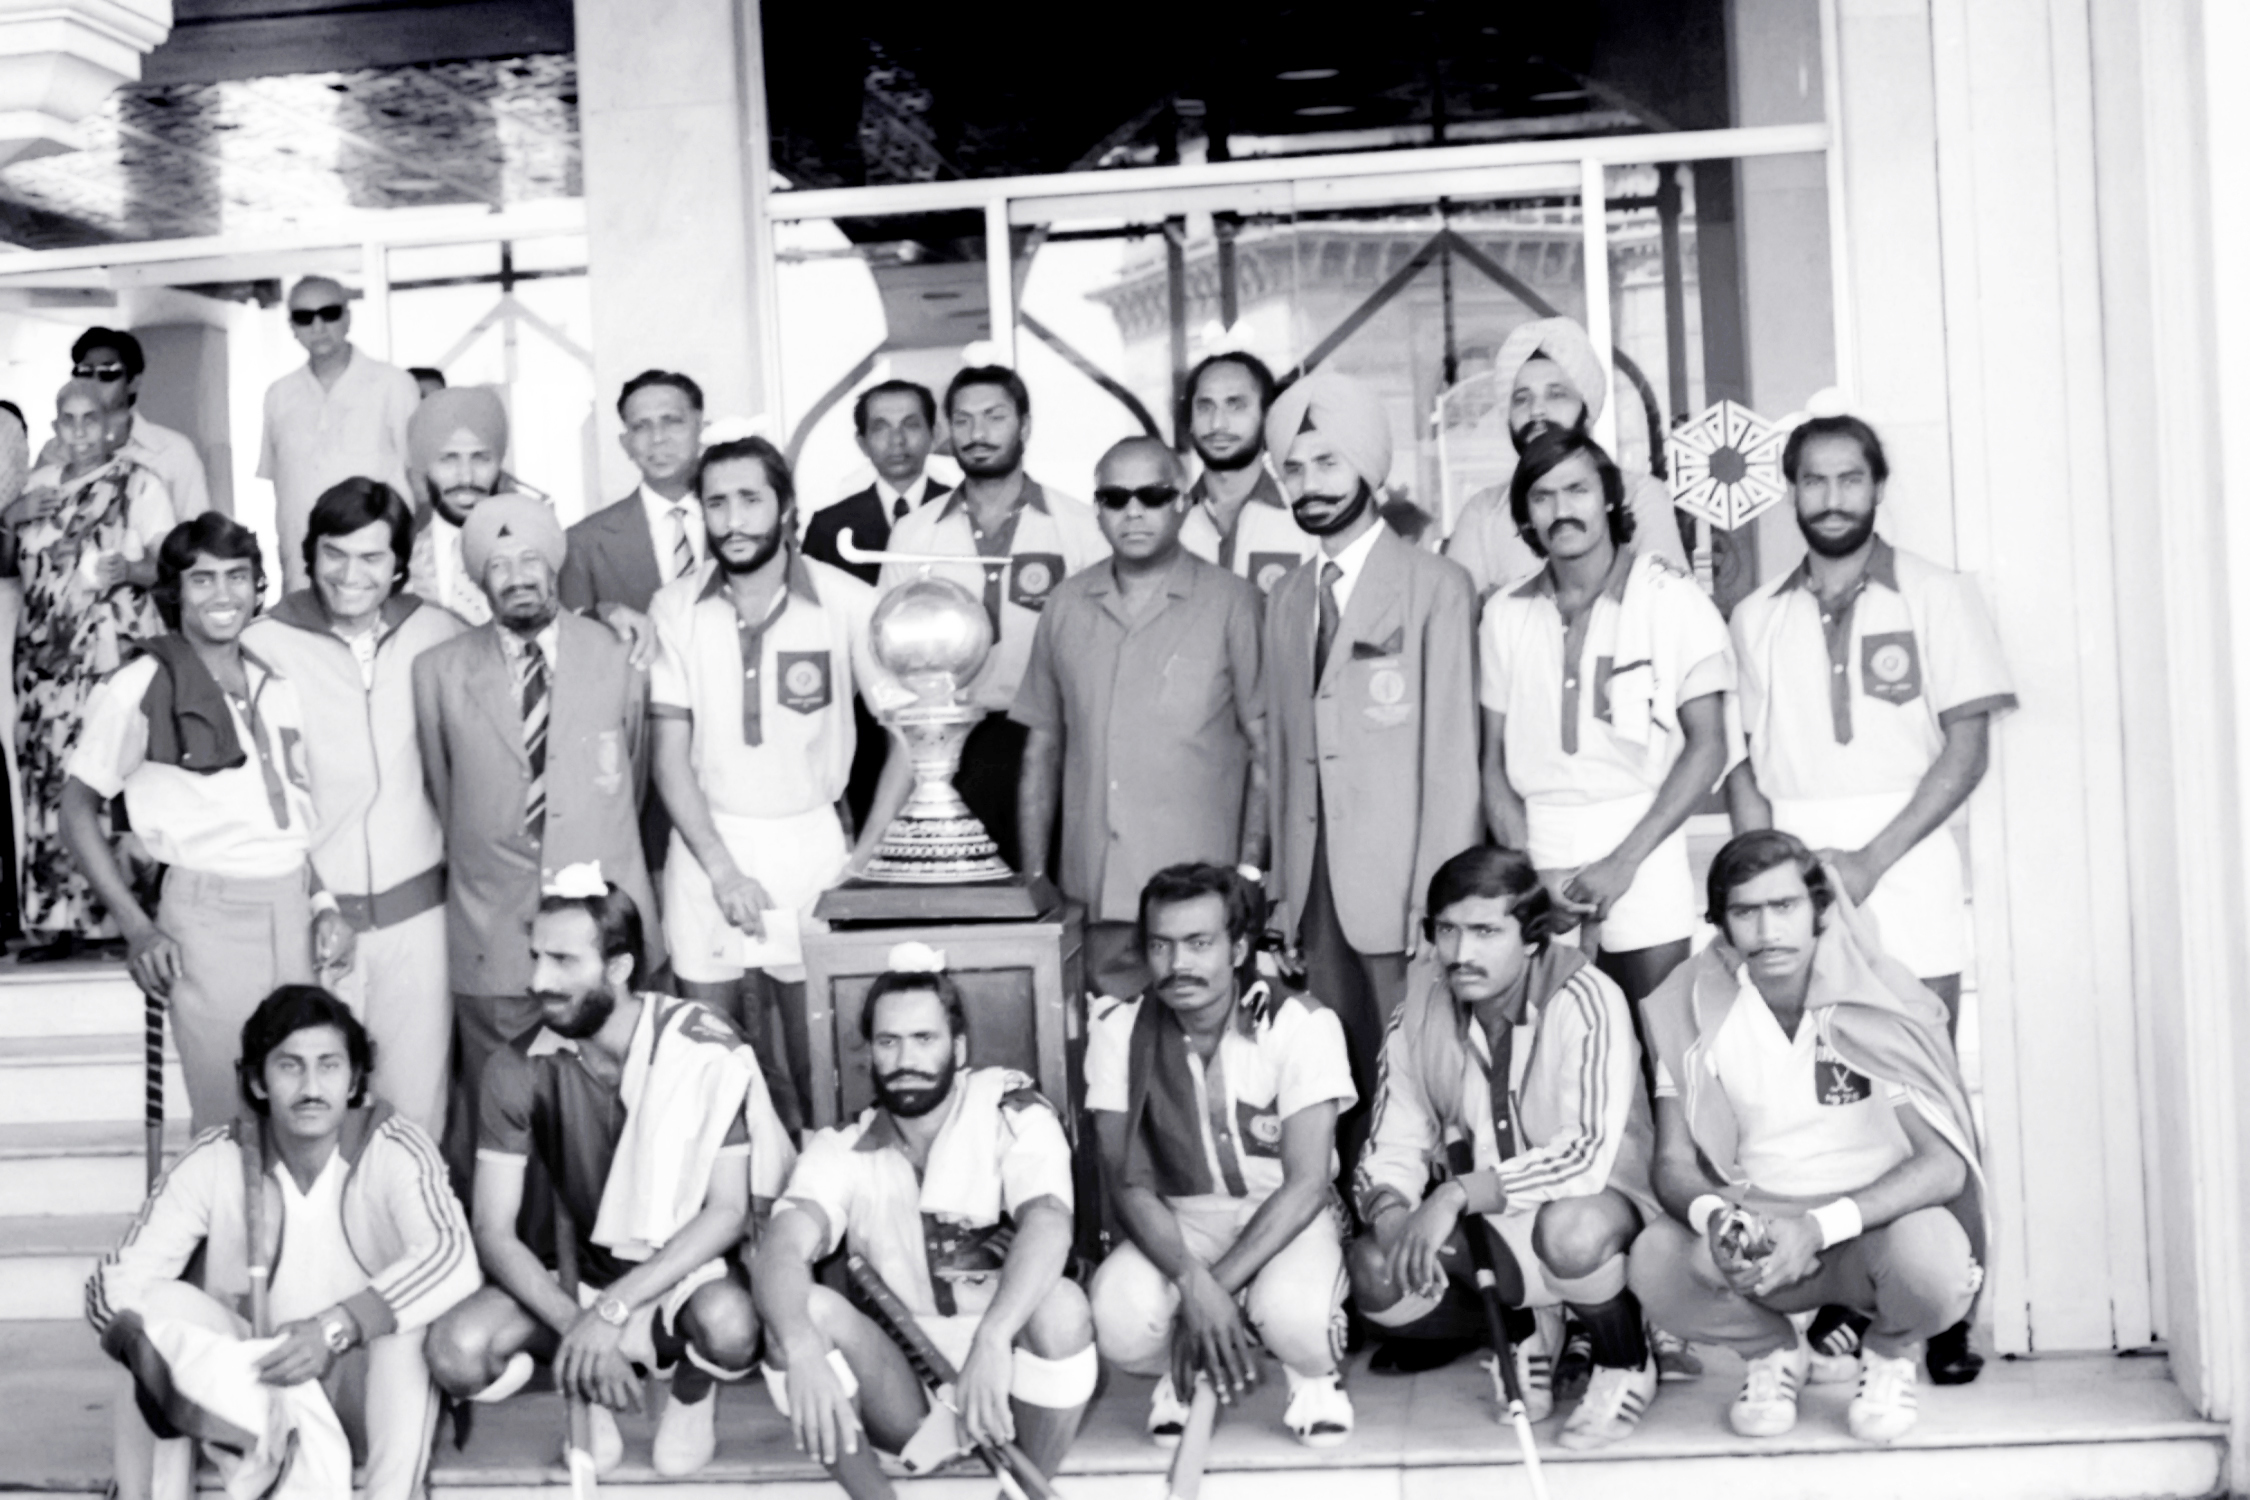 Indian Men's Hockey Team after winning the 1975 Men's World Cup in Kuala Lumpur, Malaysia